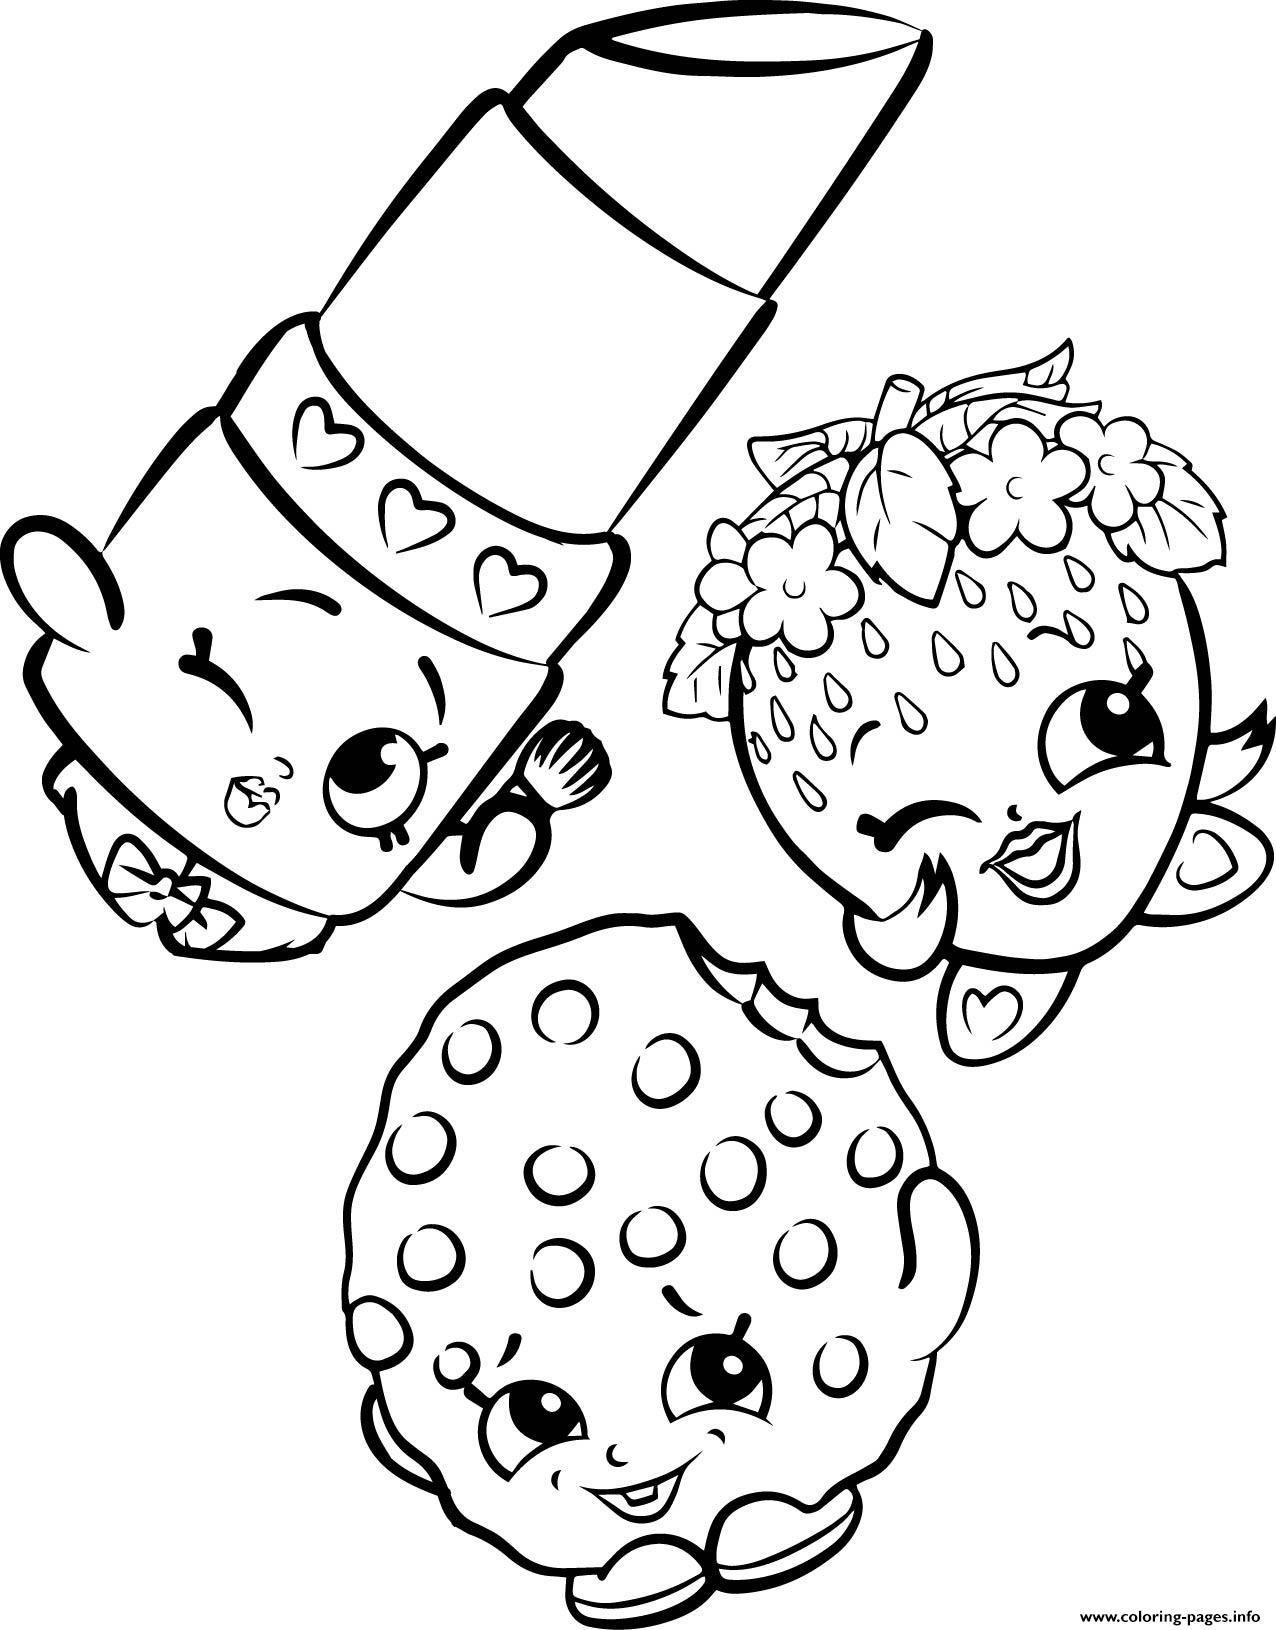 cookie coloring pages printable - free shopkins strawberry lipstick cookie coloring pages